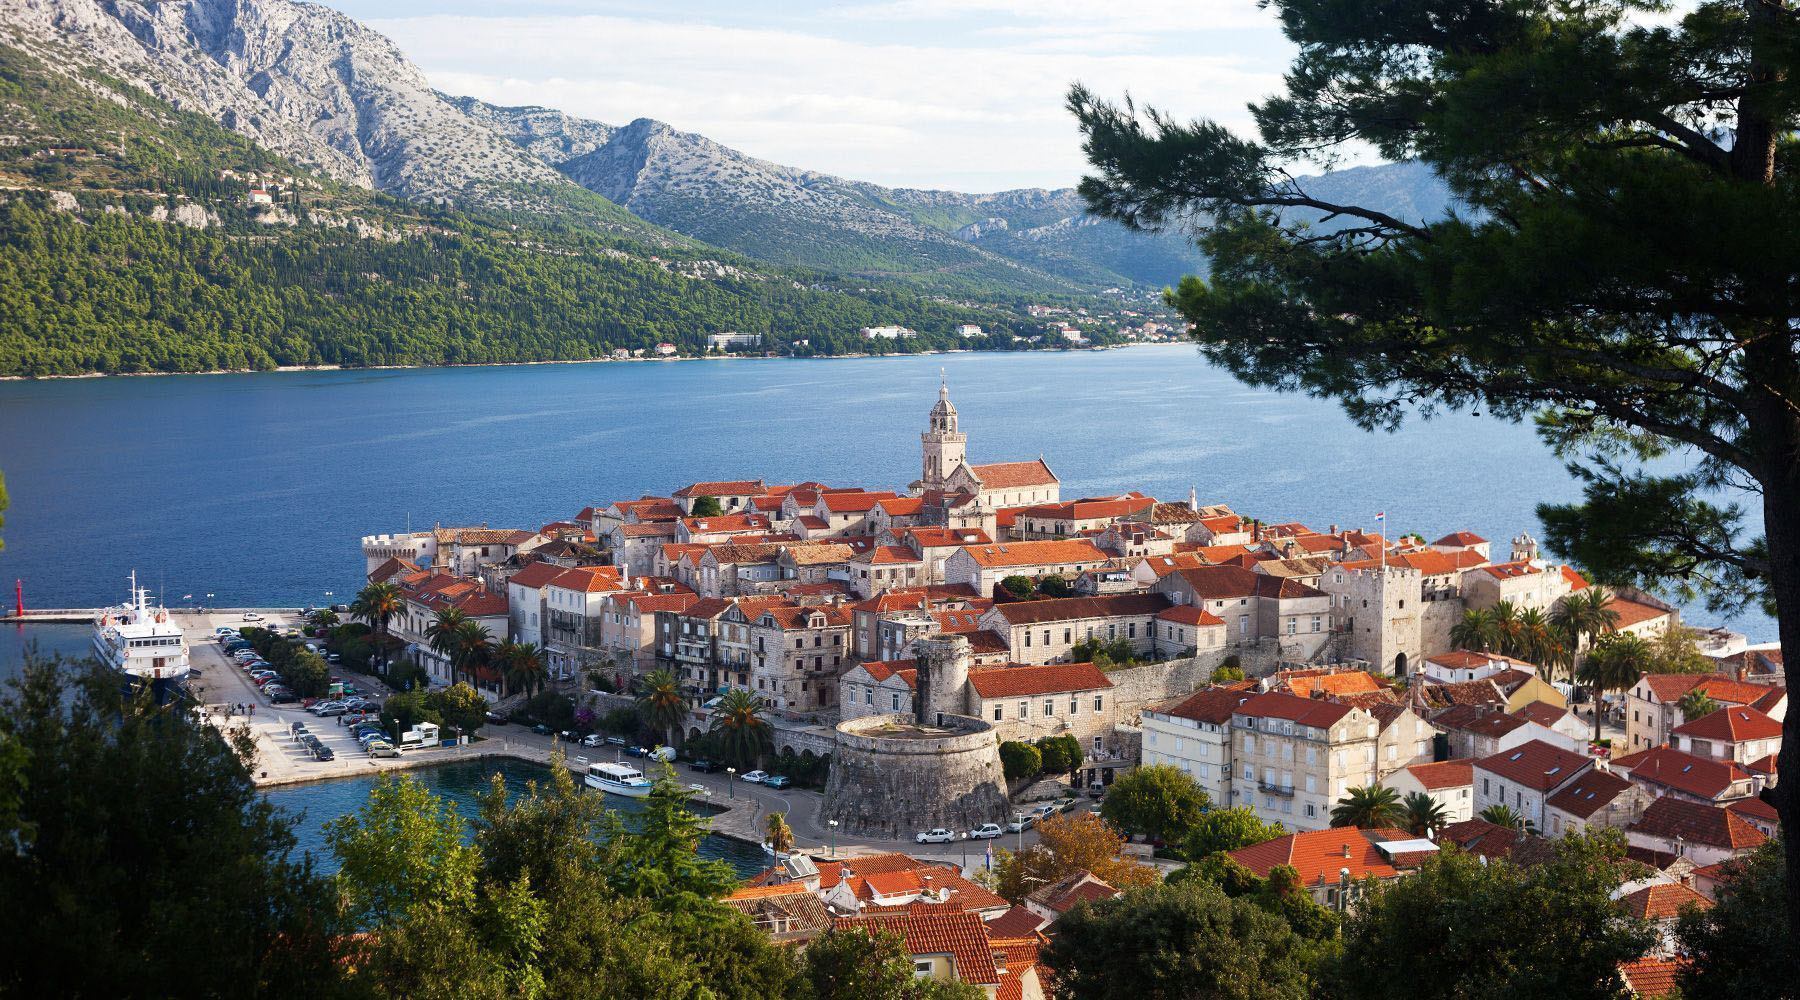 The beautiful city of Korcula, Croatia surrounded by water and mountains